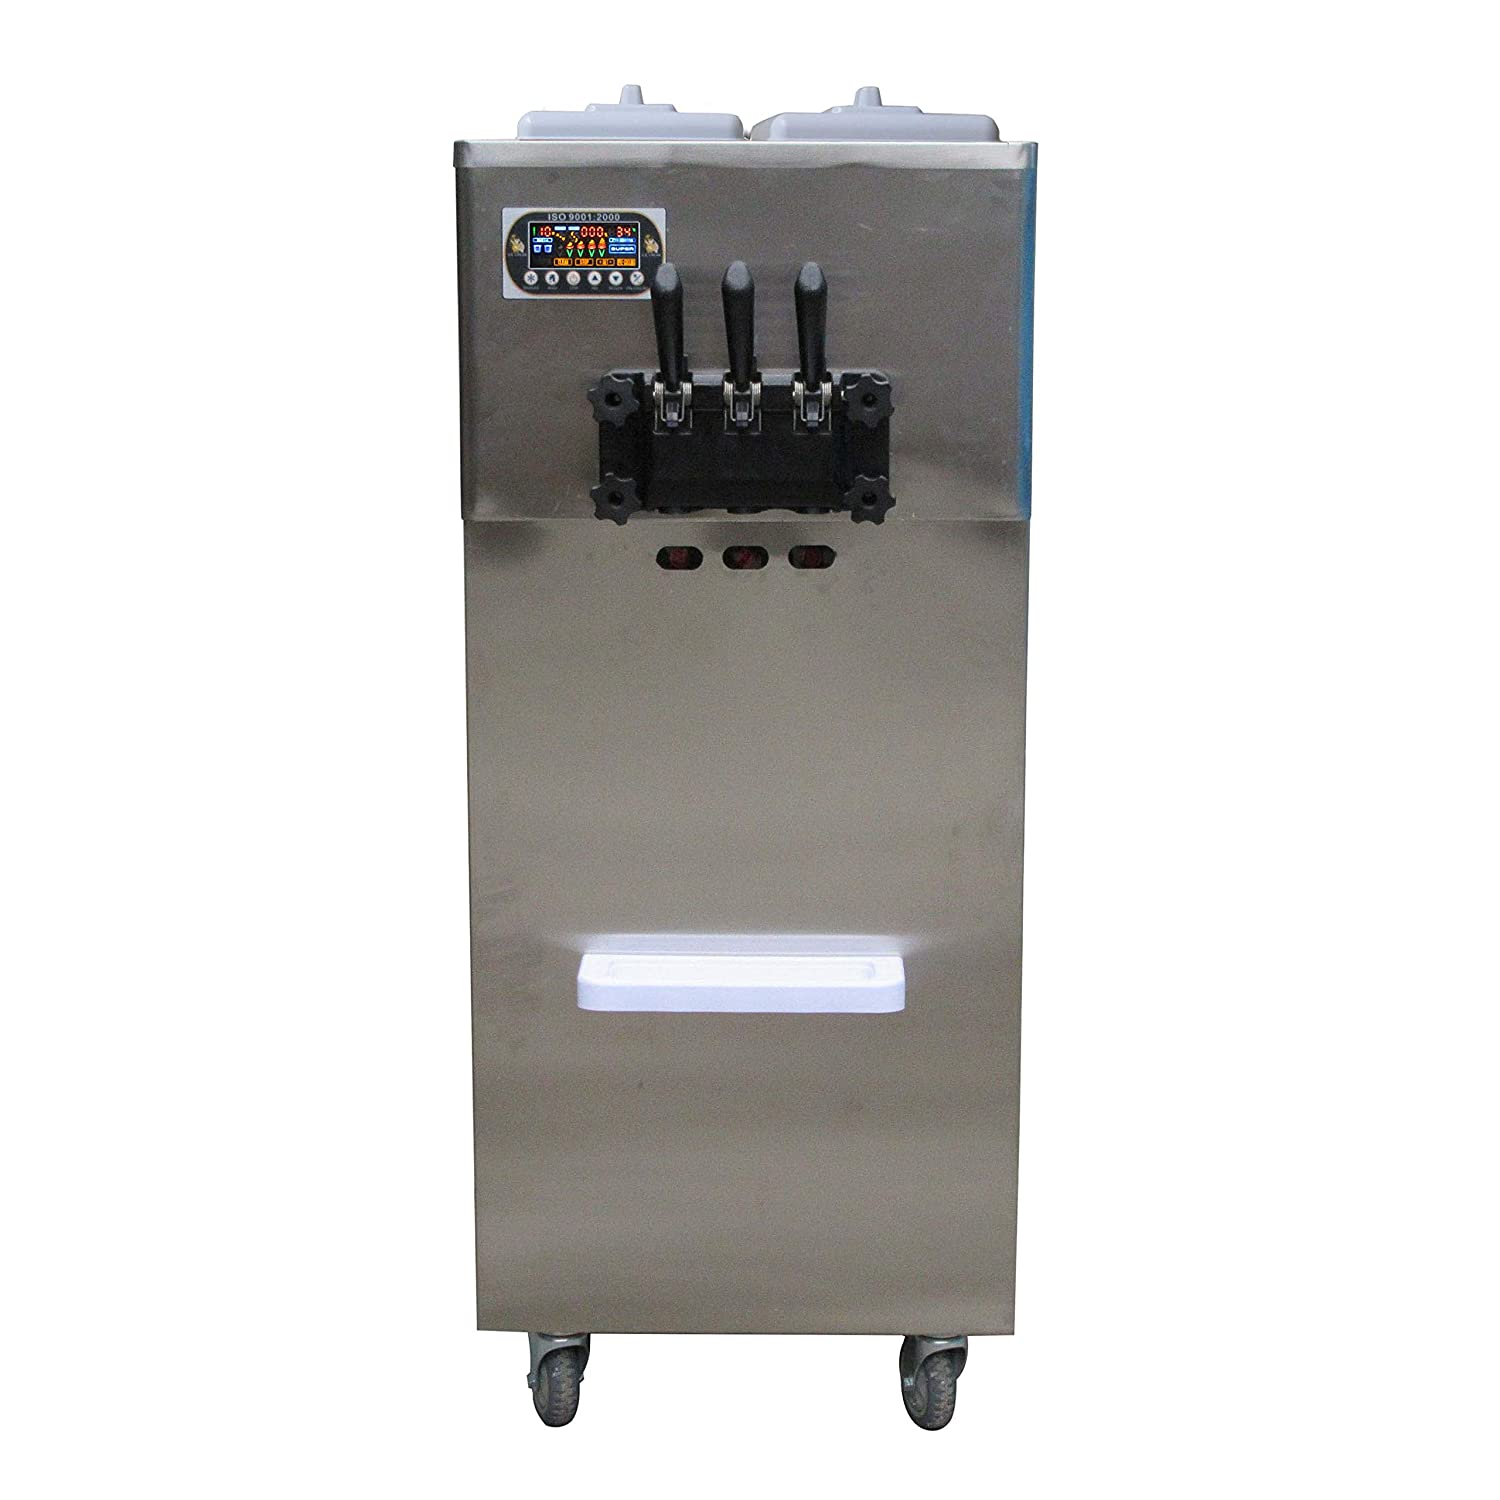 Kolice Ment Yogurt Soft Serve ice Cream Machine Taylor 2+1 Mixed Flavors Soft ice Cream Machine 210L Big Hopper, 22L Big Cylinder,Stainless Steel Beater,Gear Box,auto precooling,countering